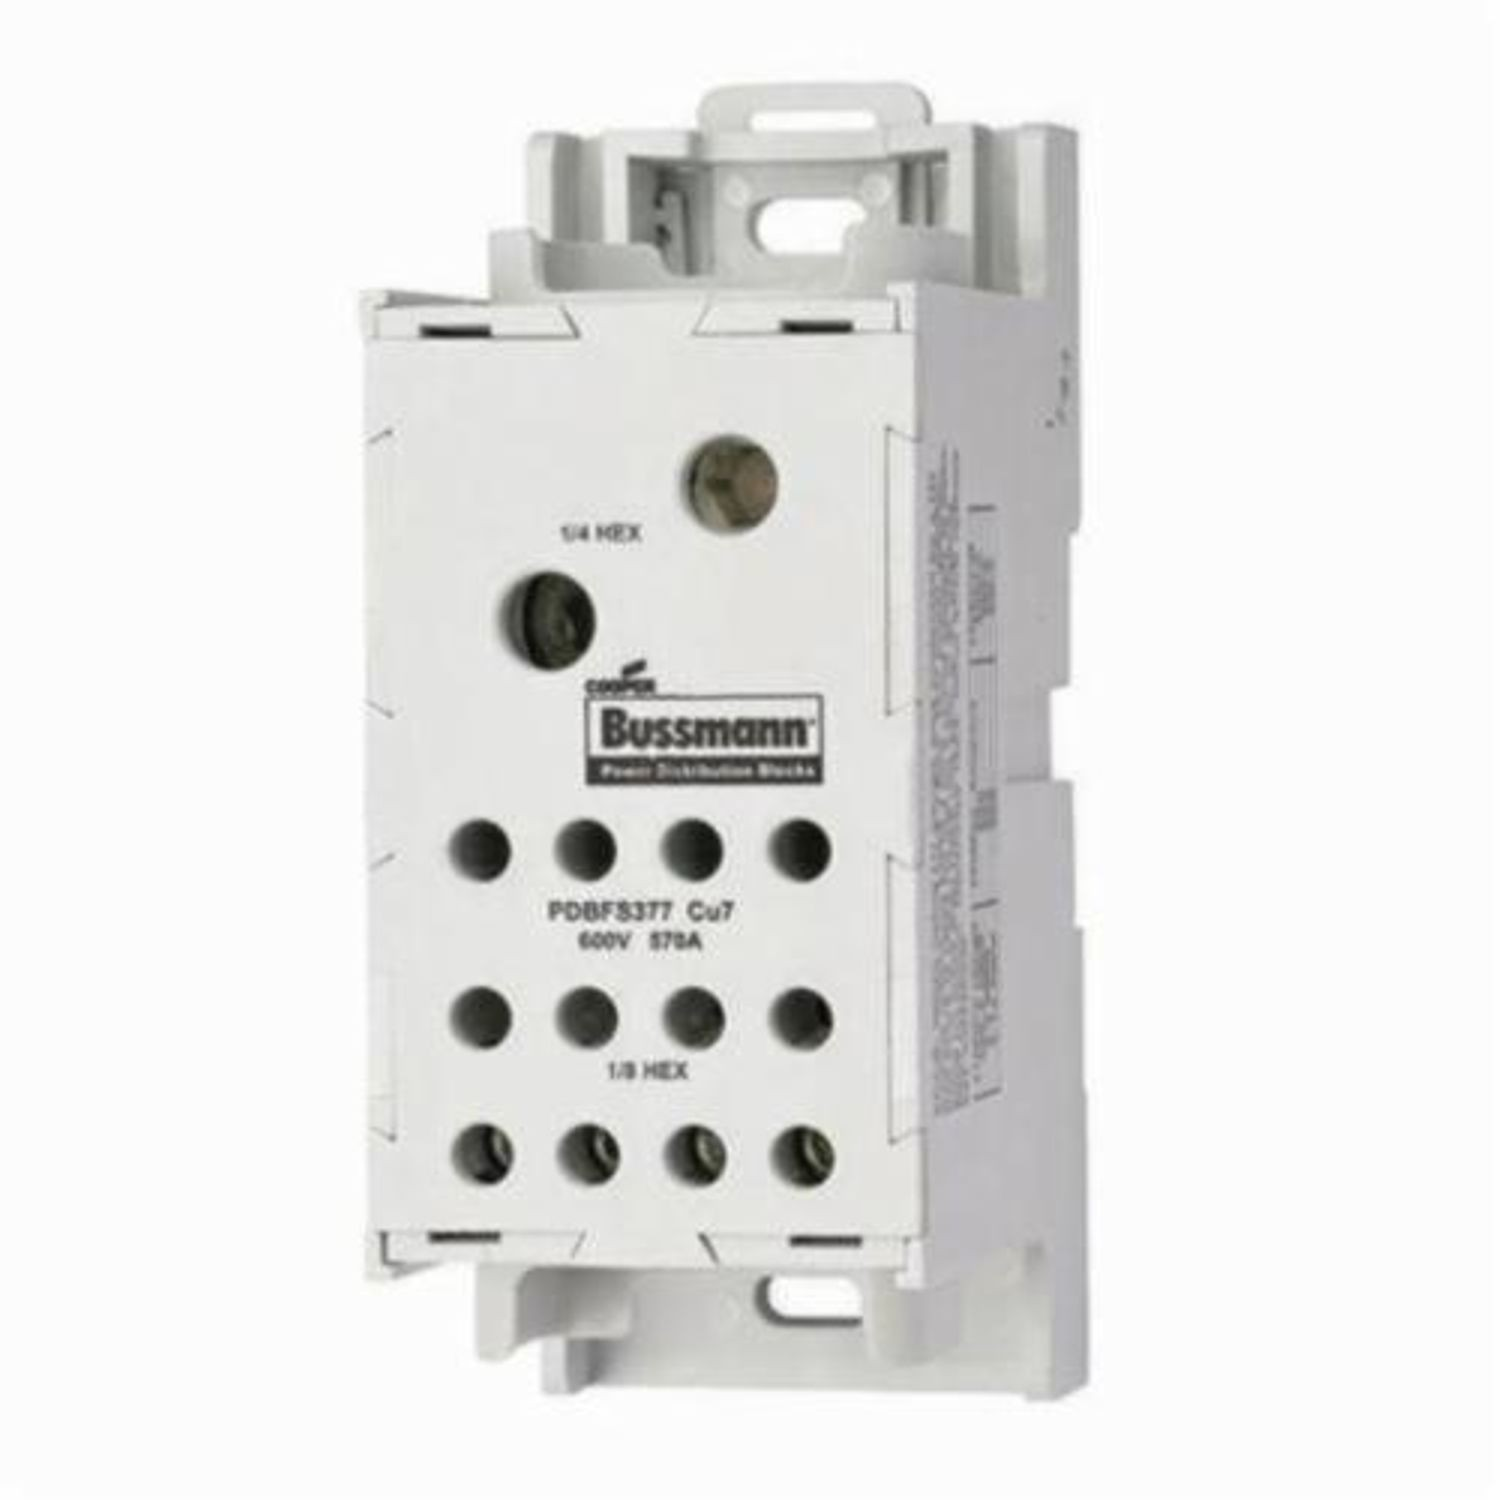 Bussmann Pdbfs 330 Finger Safe Power Distribution Block 600 Vac Wiring 380 A 1 Poles 6 Awg To 500 Kcmil Wire